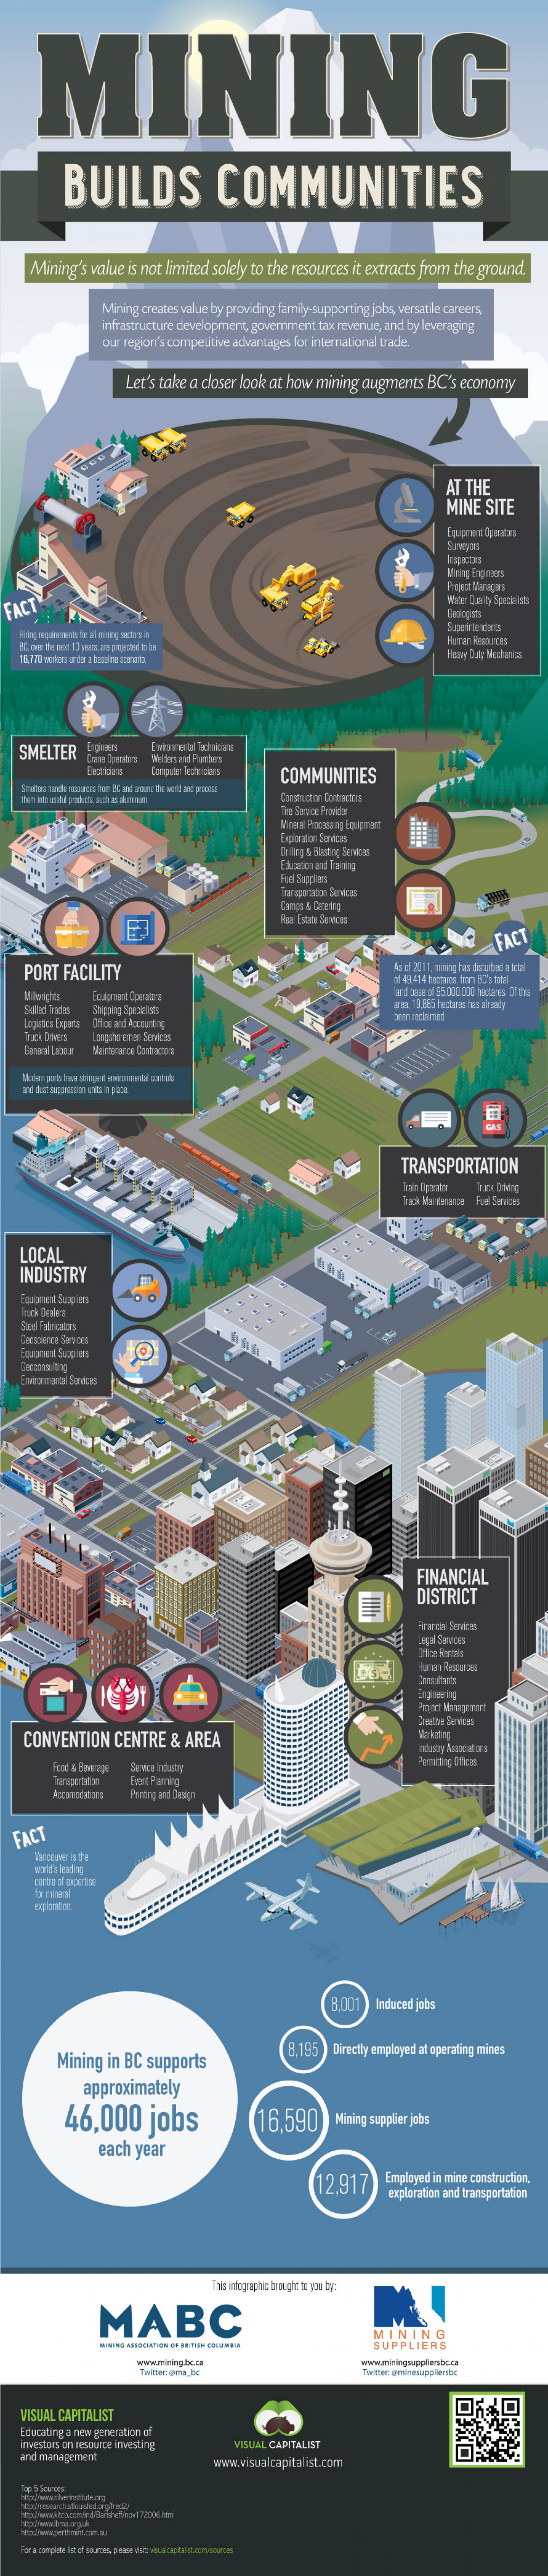 Mining Builds Communities Infographic